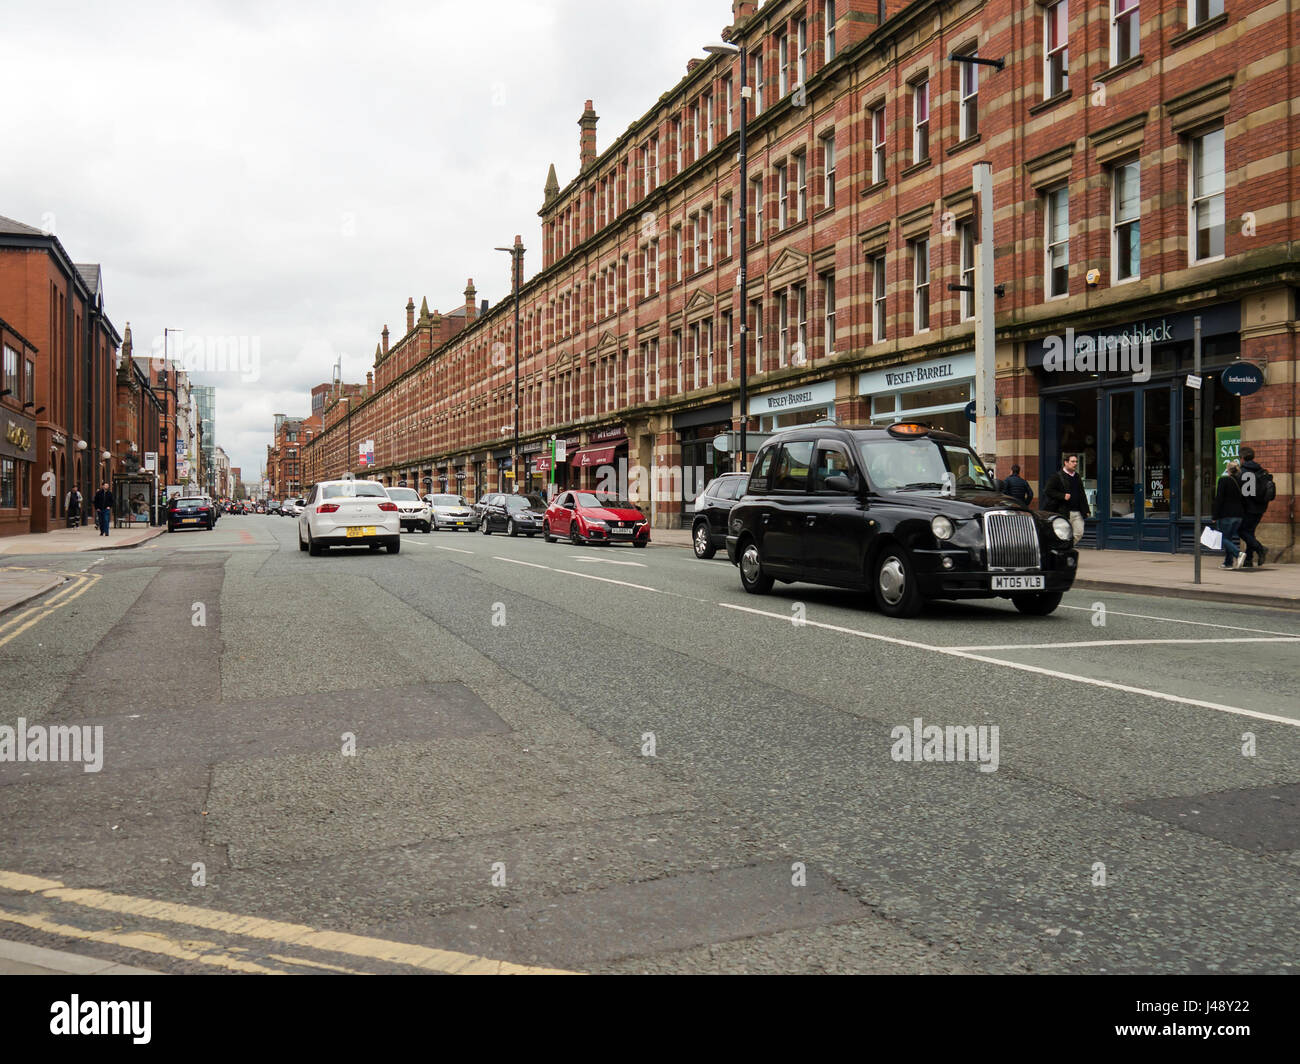 A view of Deansgate, Manchester city centre, England - Stock Image